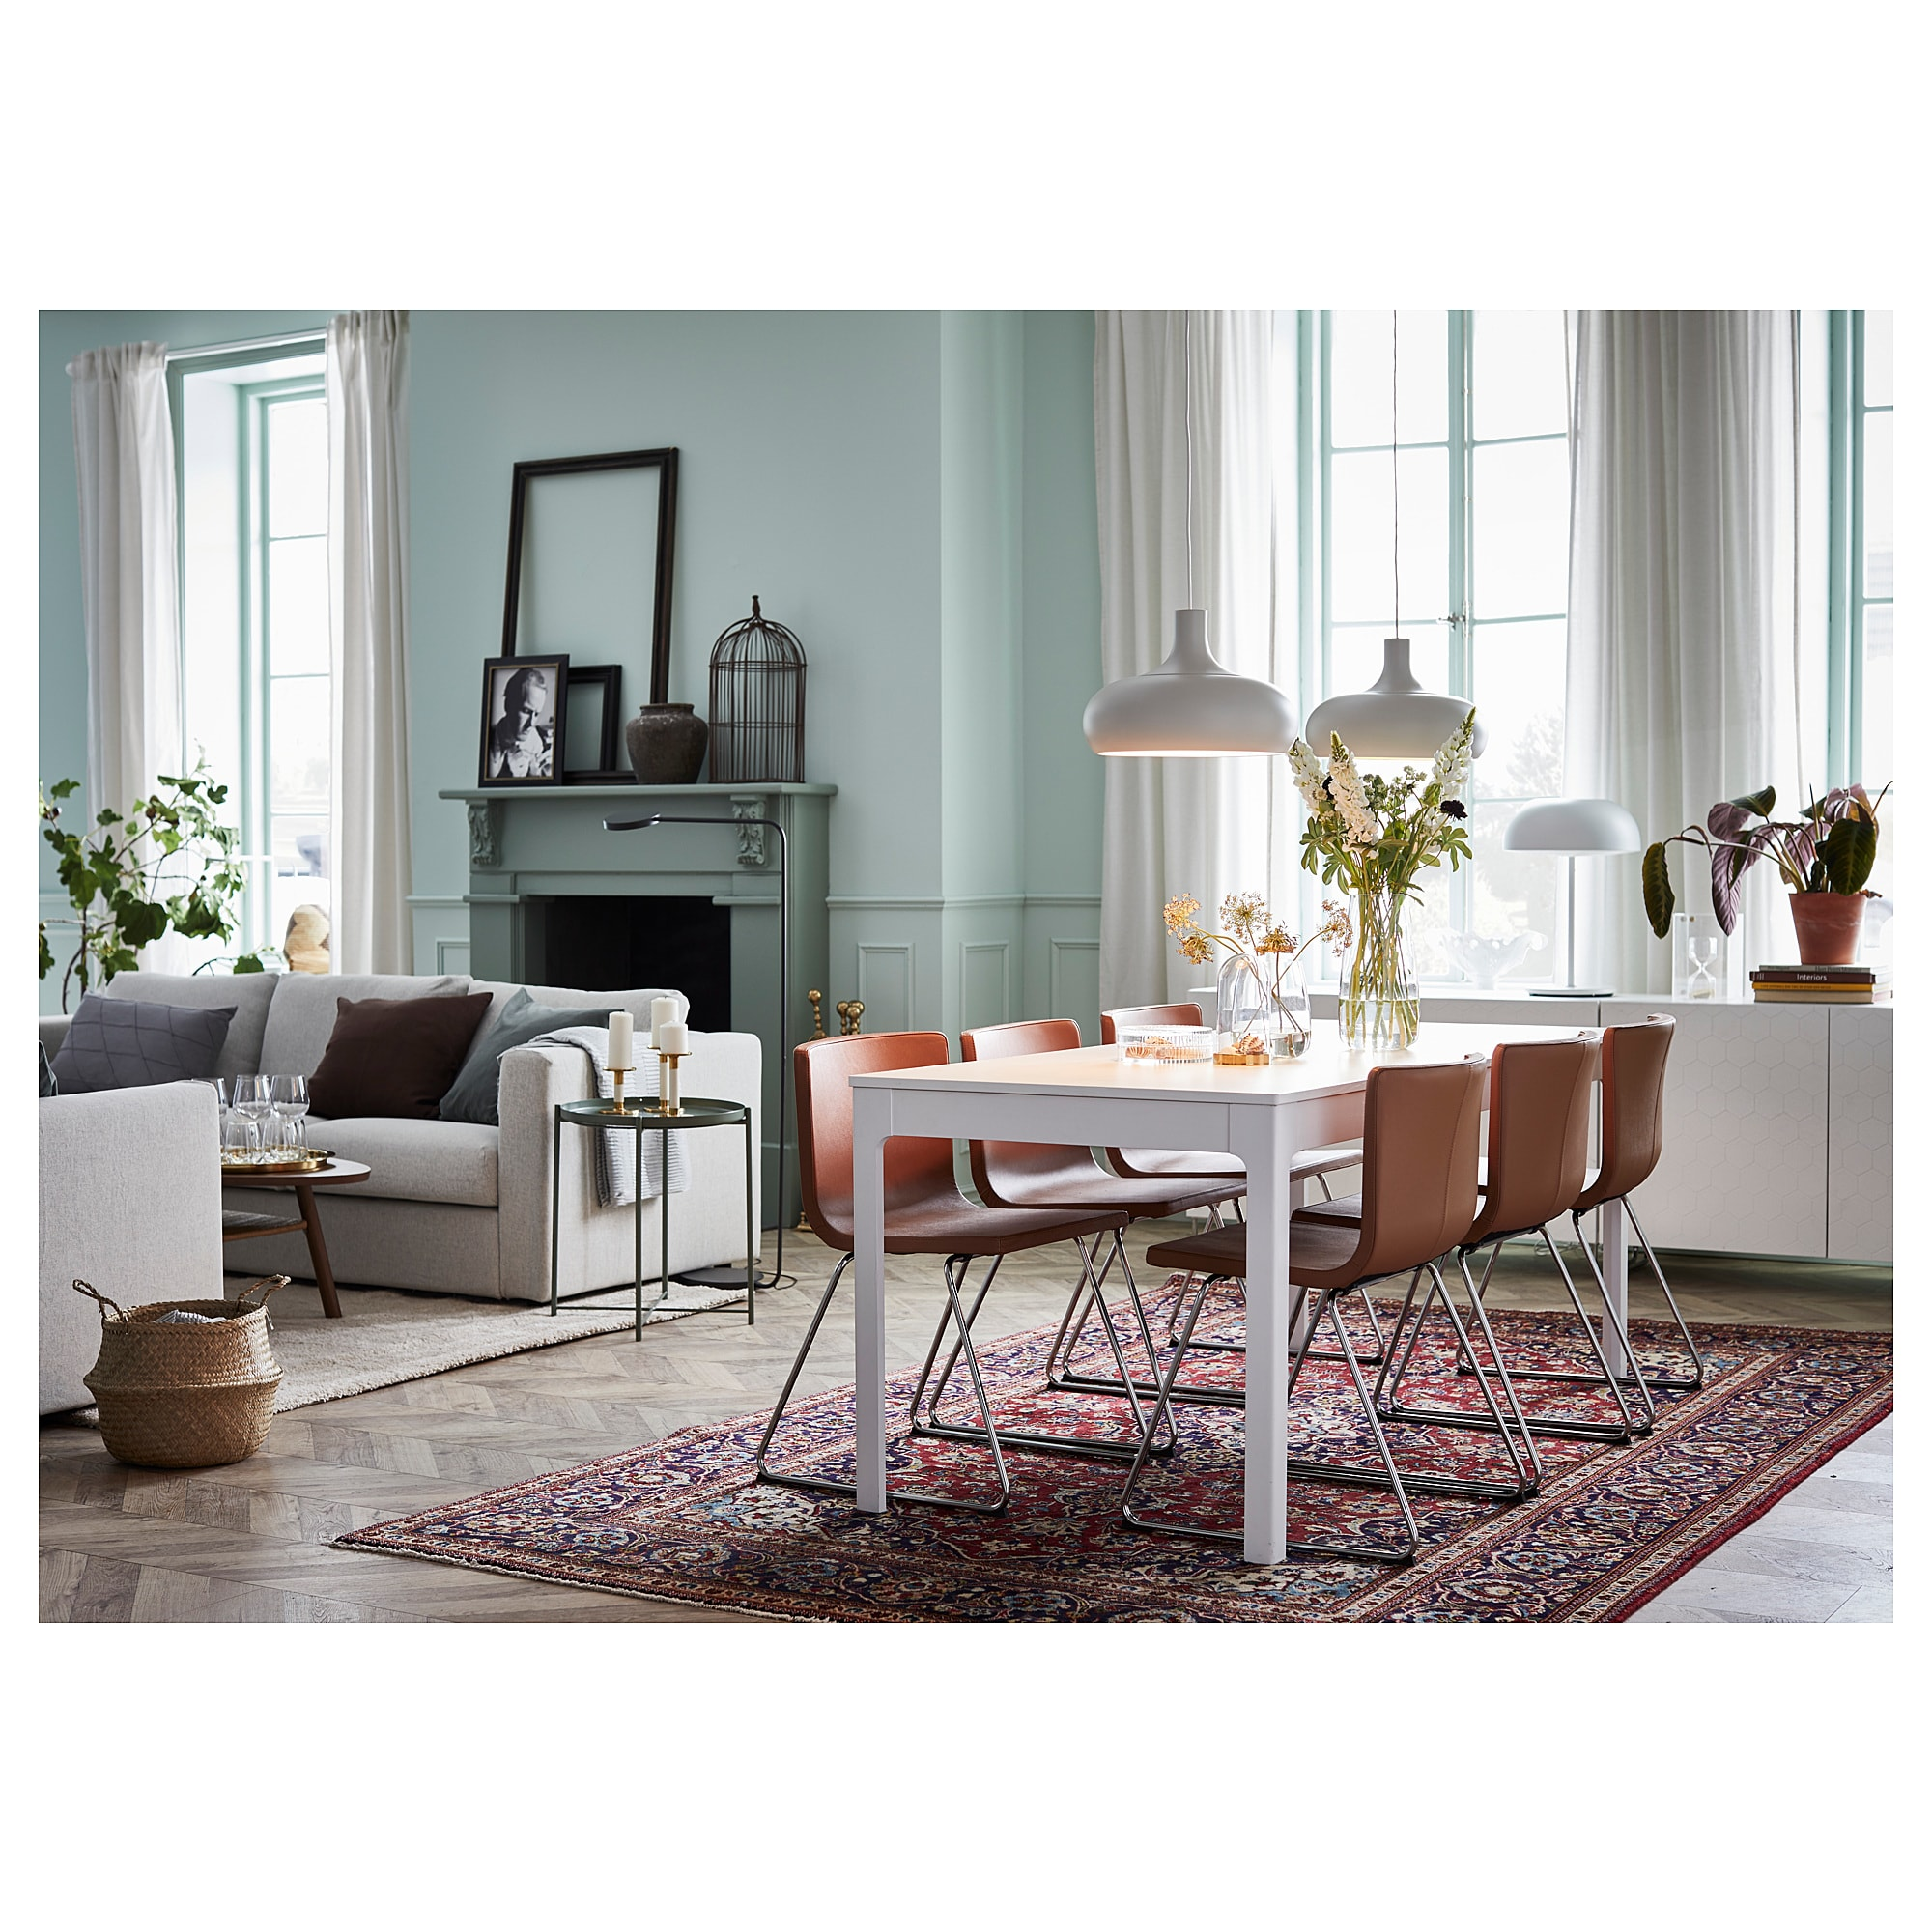 Ikea Ekedalen Extendable Table White In 2019 Dining Room Furniture Dining Table Dining - Sedia Ikea Dwg